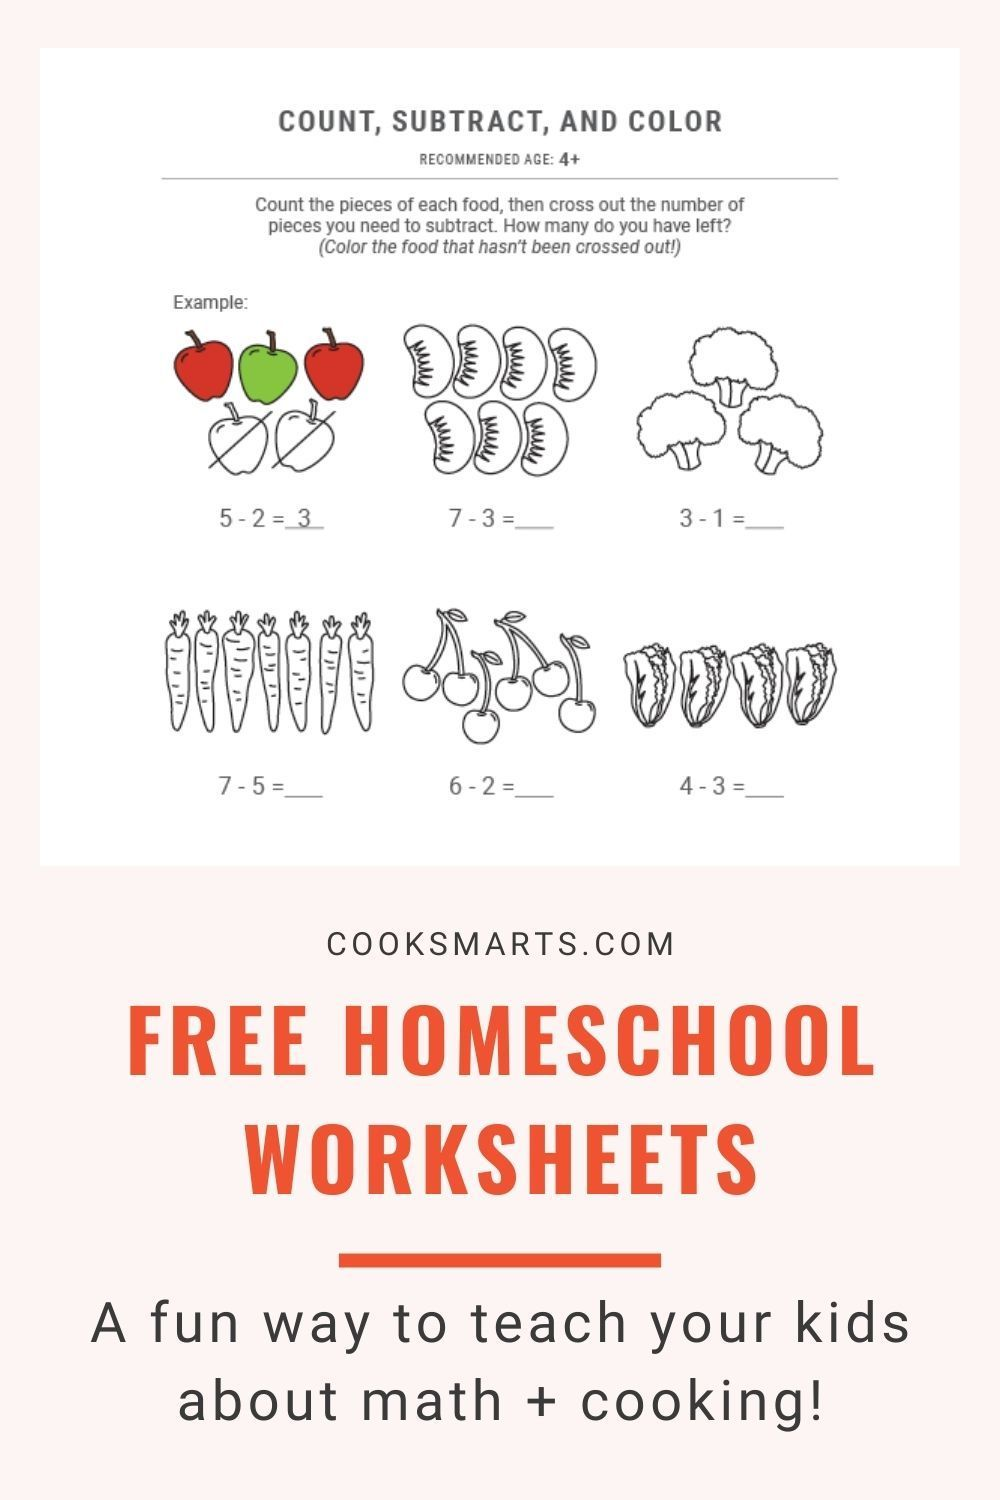 Fun Activities With Math Do Exist Free Printable Cooking Math Worksheets Cook Smarts Cook Smarts Math Worksheets Fun Math Activities [ 1500 x 1000 Pixel ]